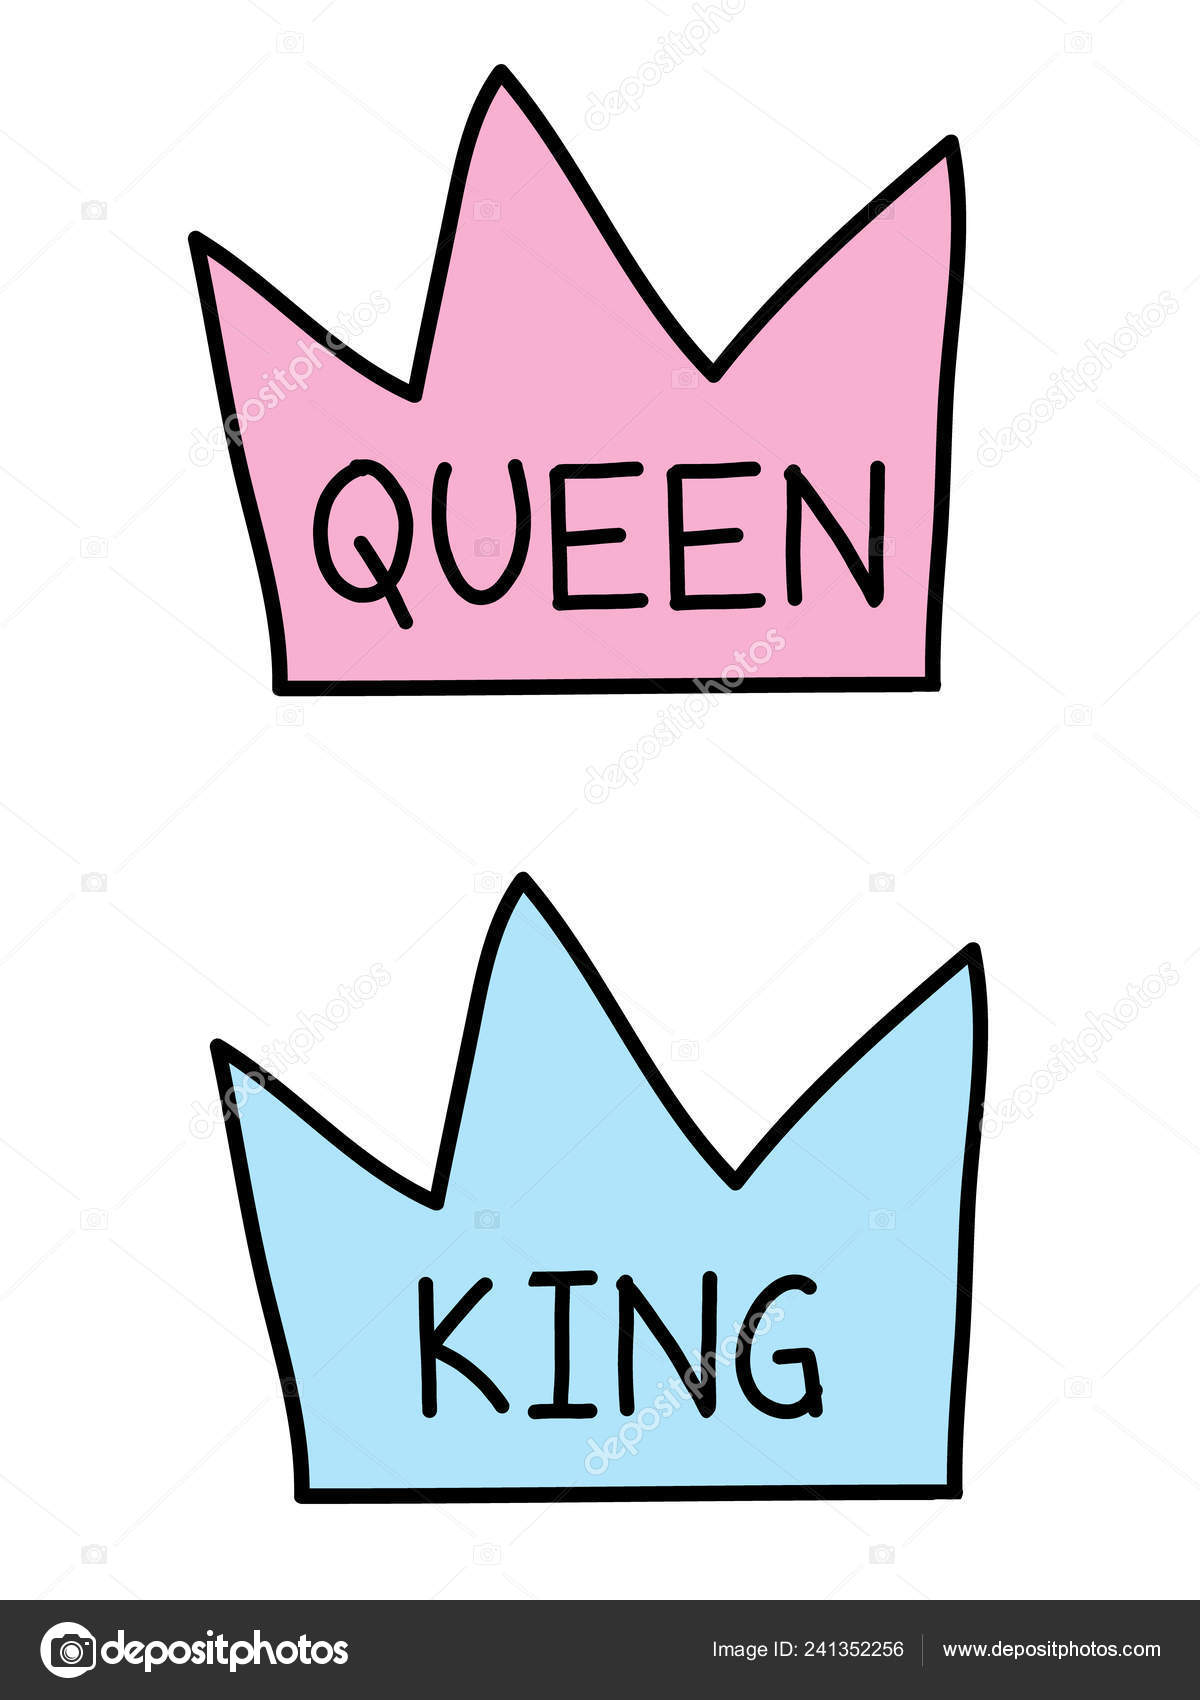 Drawings Of King And Queen Crowns King Queen Crowns Flat